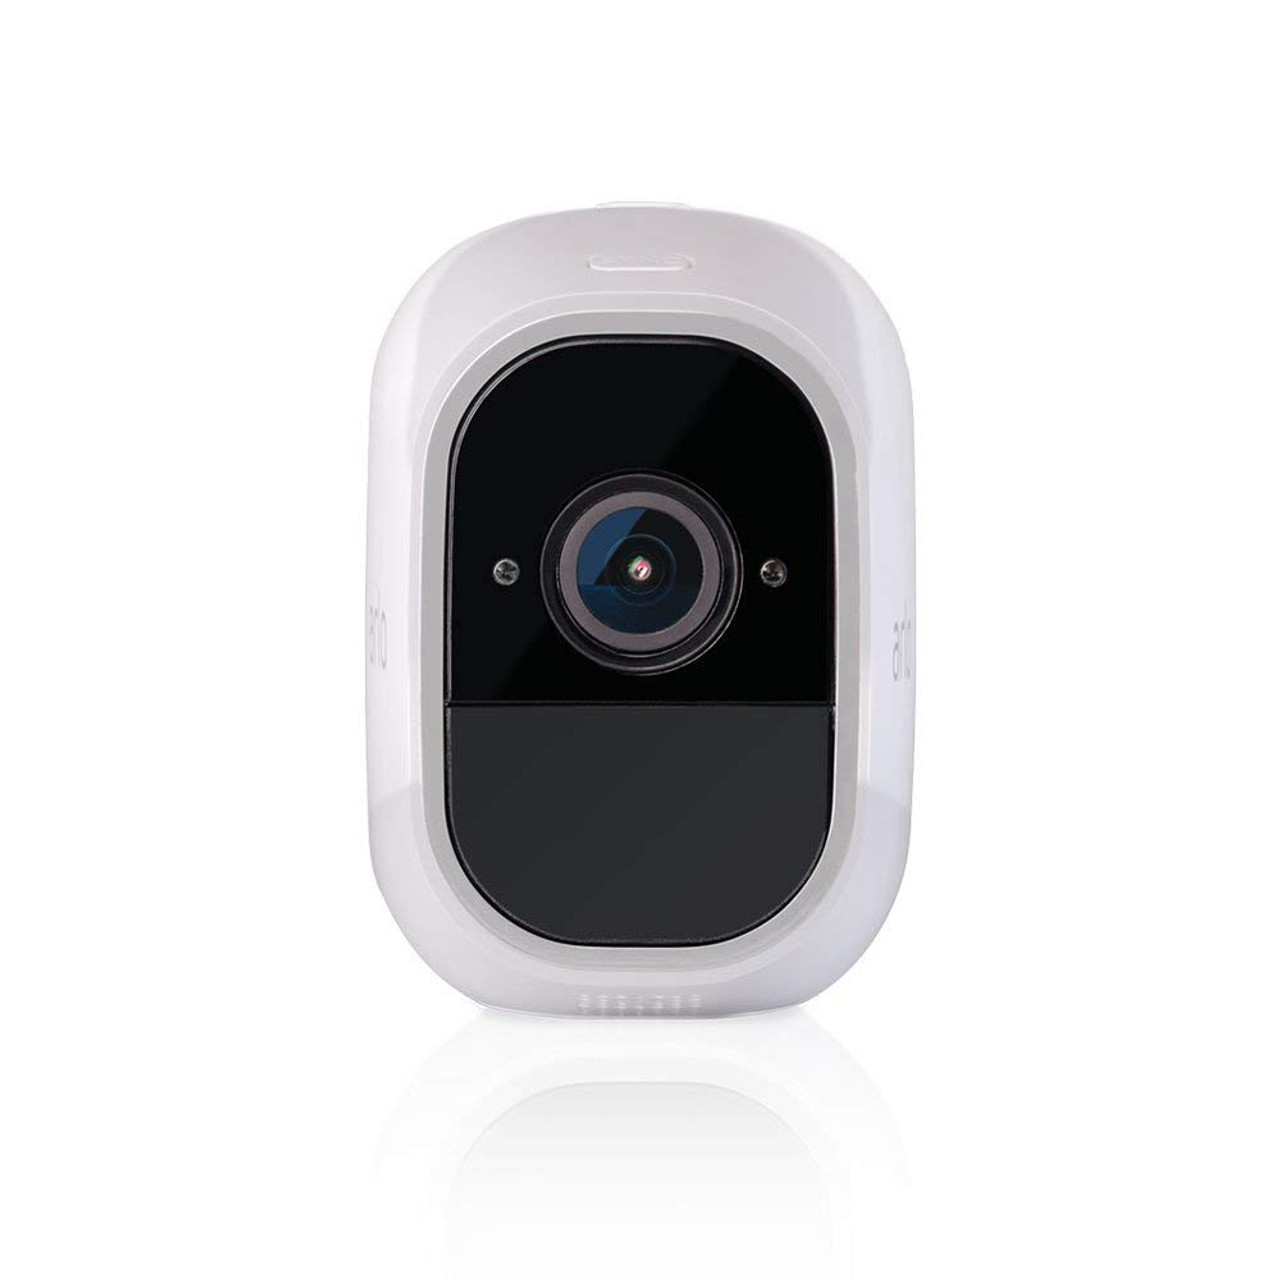 Arlo Pro 2 VMC4030P-100NAR (1) Add-on Camera | Rechargeable, Night vision, Indoor/Outdoor, HD Video 1080p, Two-Way Talk, Wall Mount | Cloud Storage Included | Works with Arlo Pro Base Station - Certified Refurbished